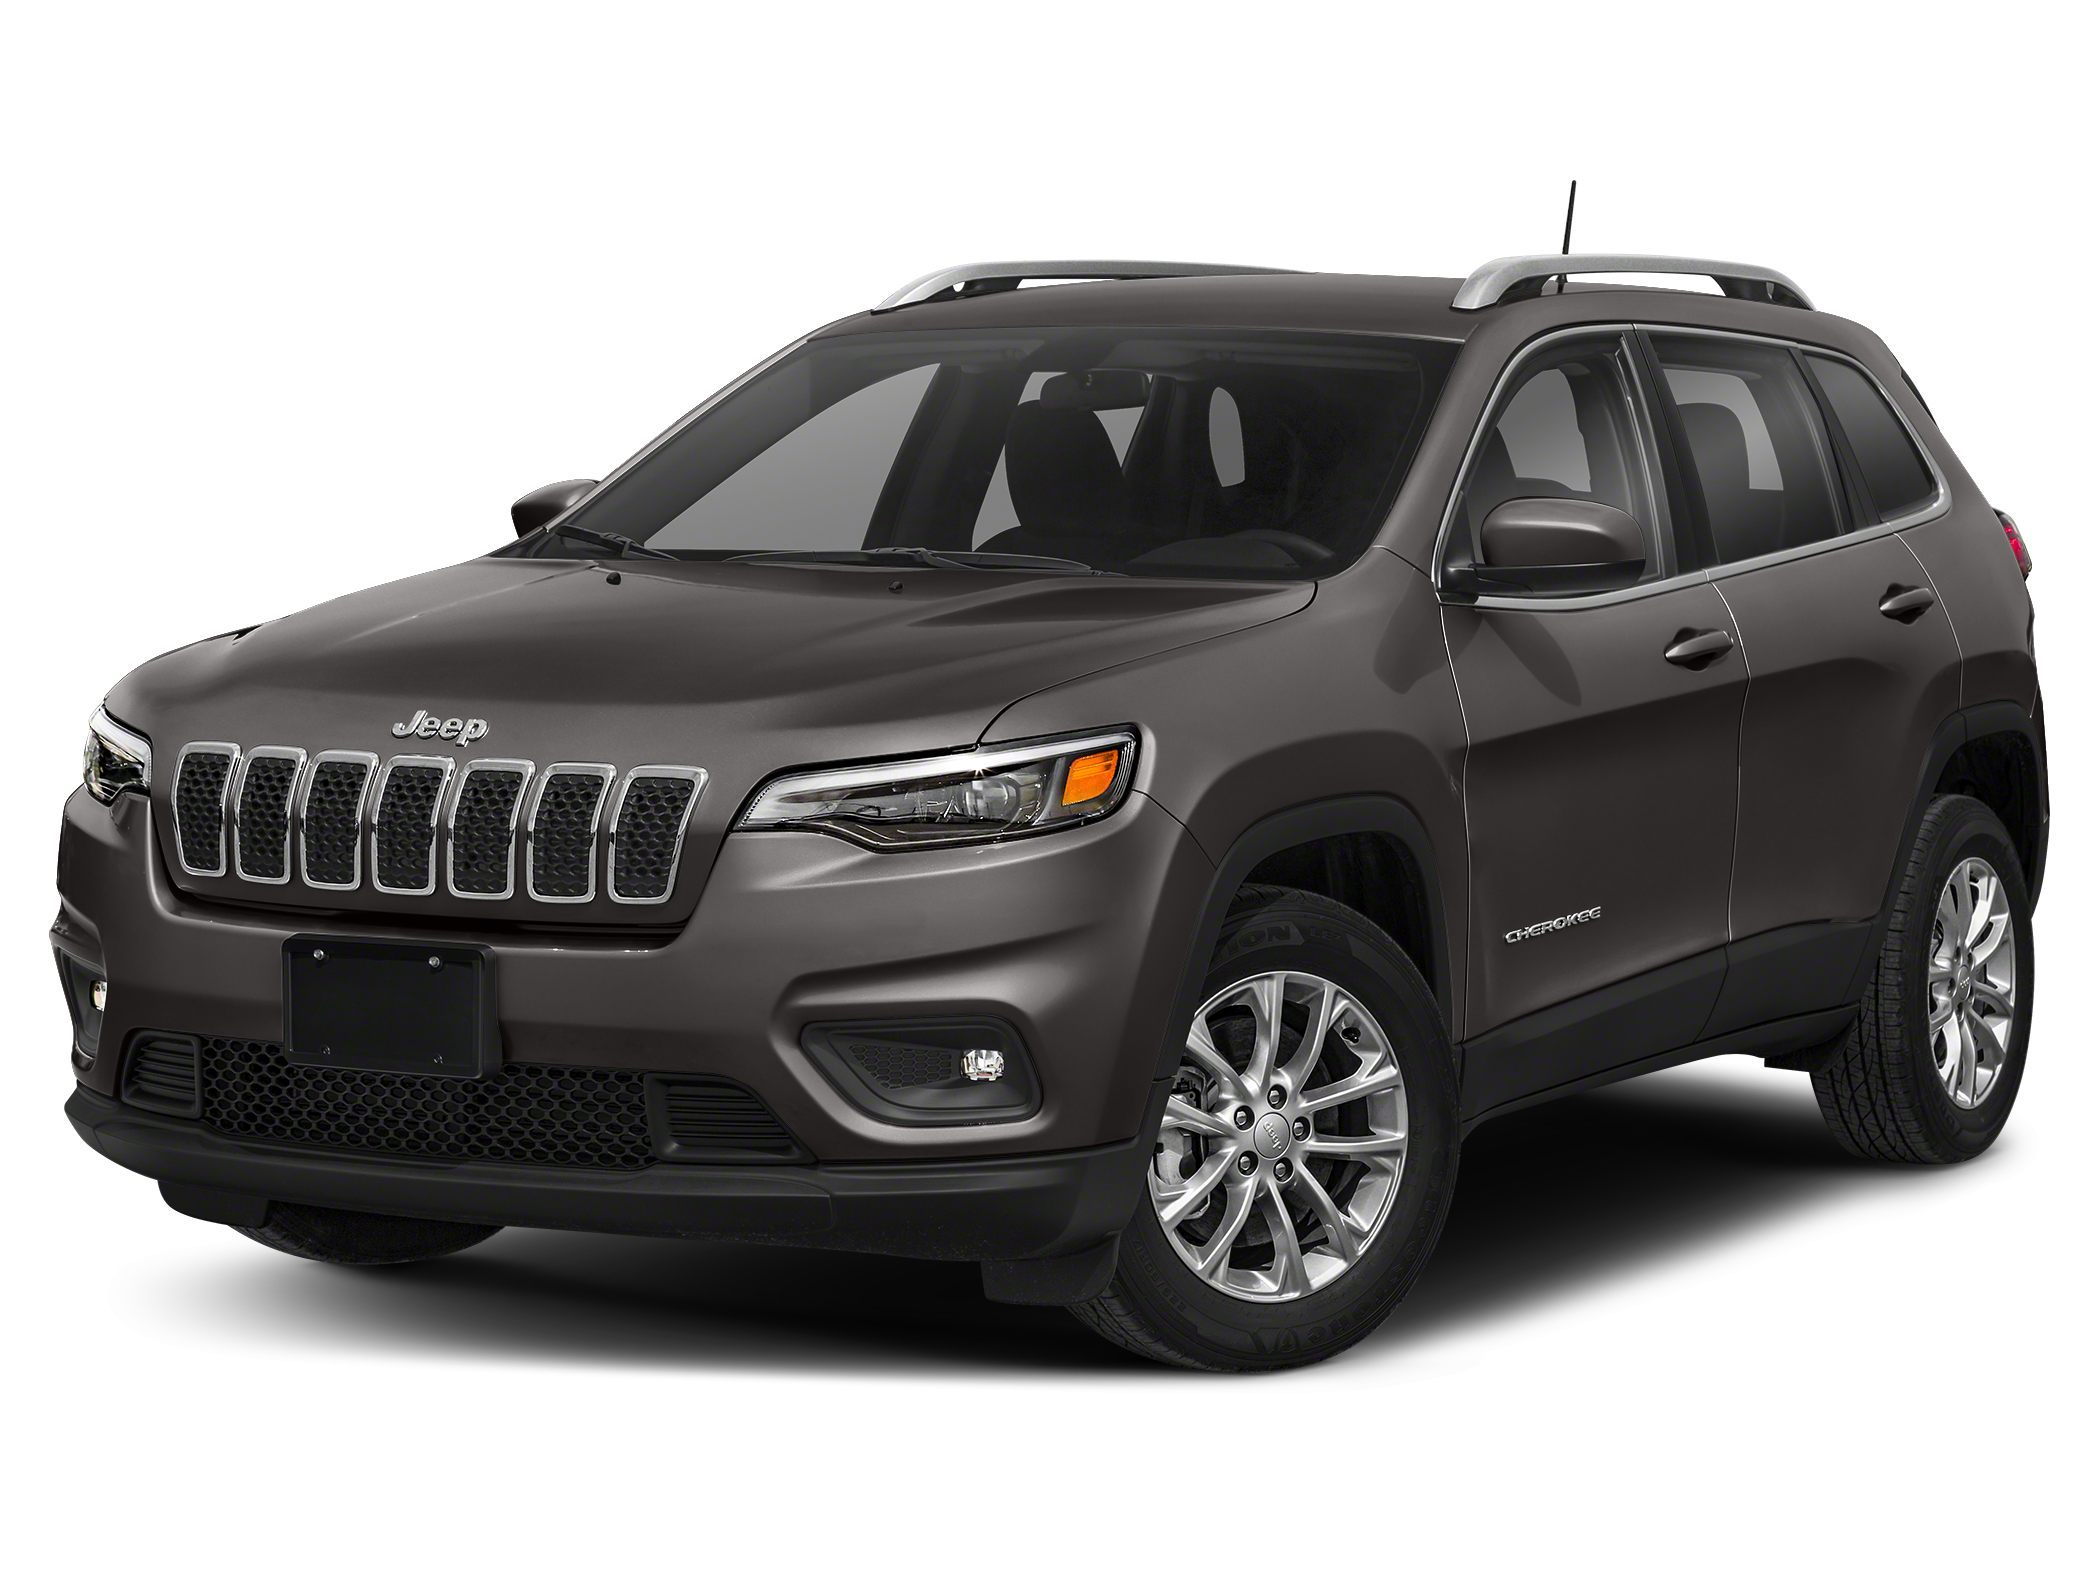 used 2019 Jeep Cherokee car, priced at $27,777